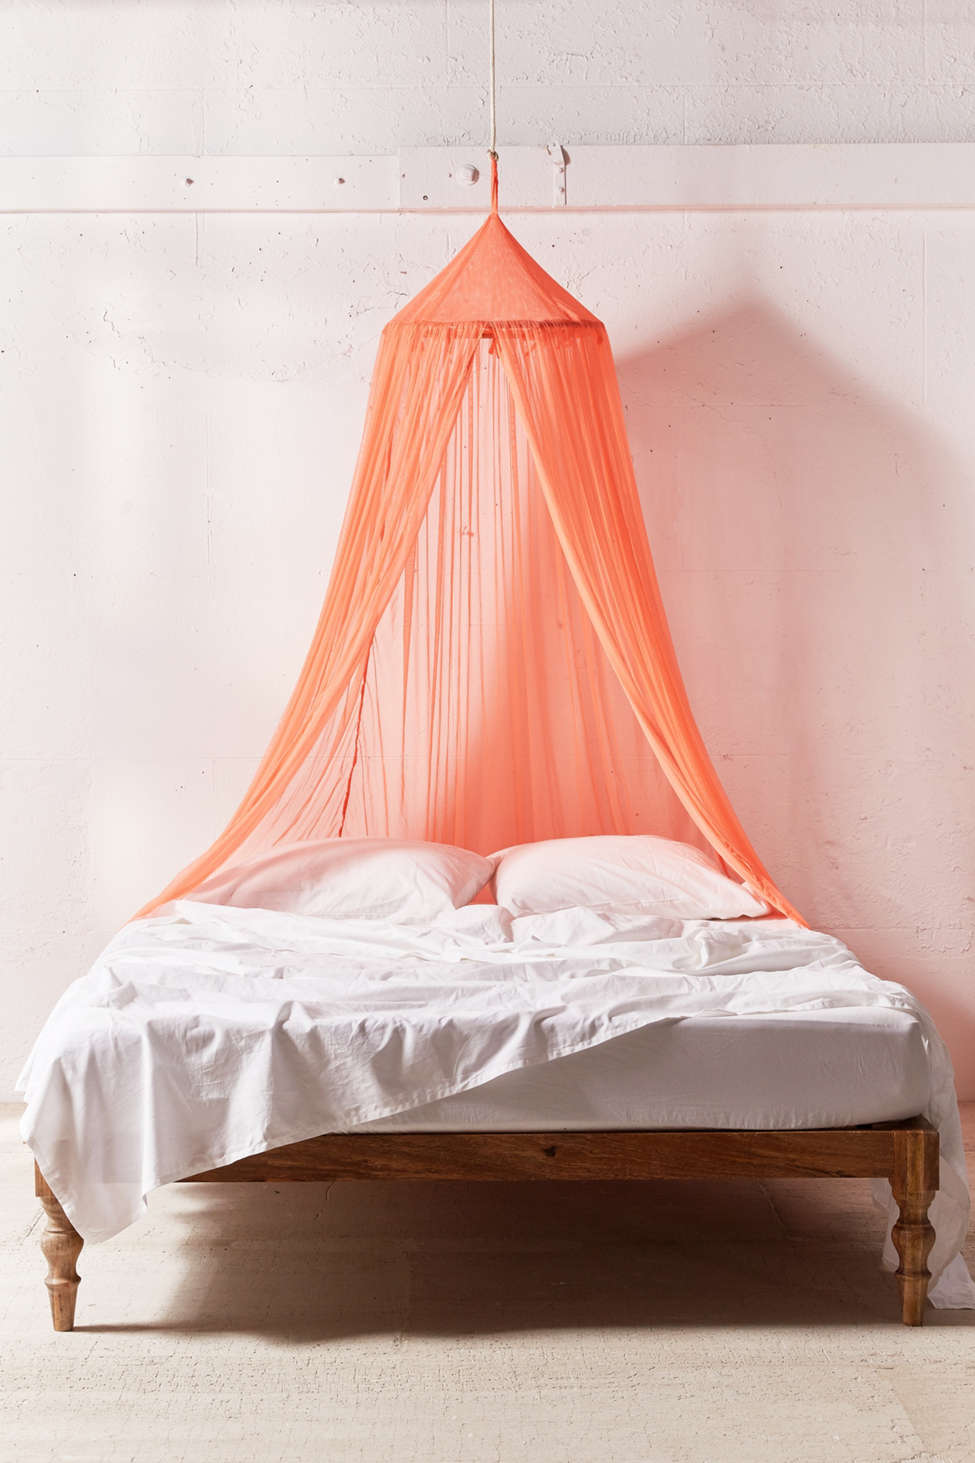 Bedcanopy mesh bed canopy | urban outfitters